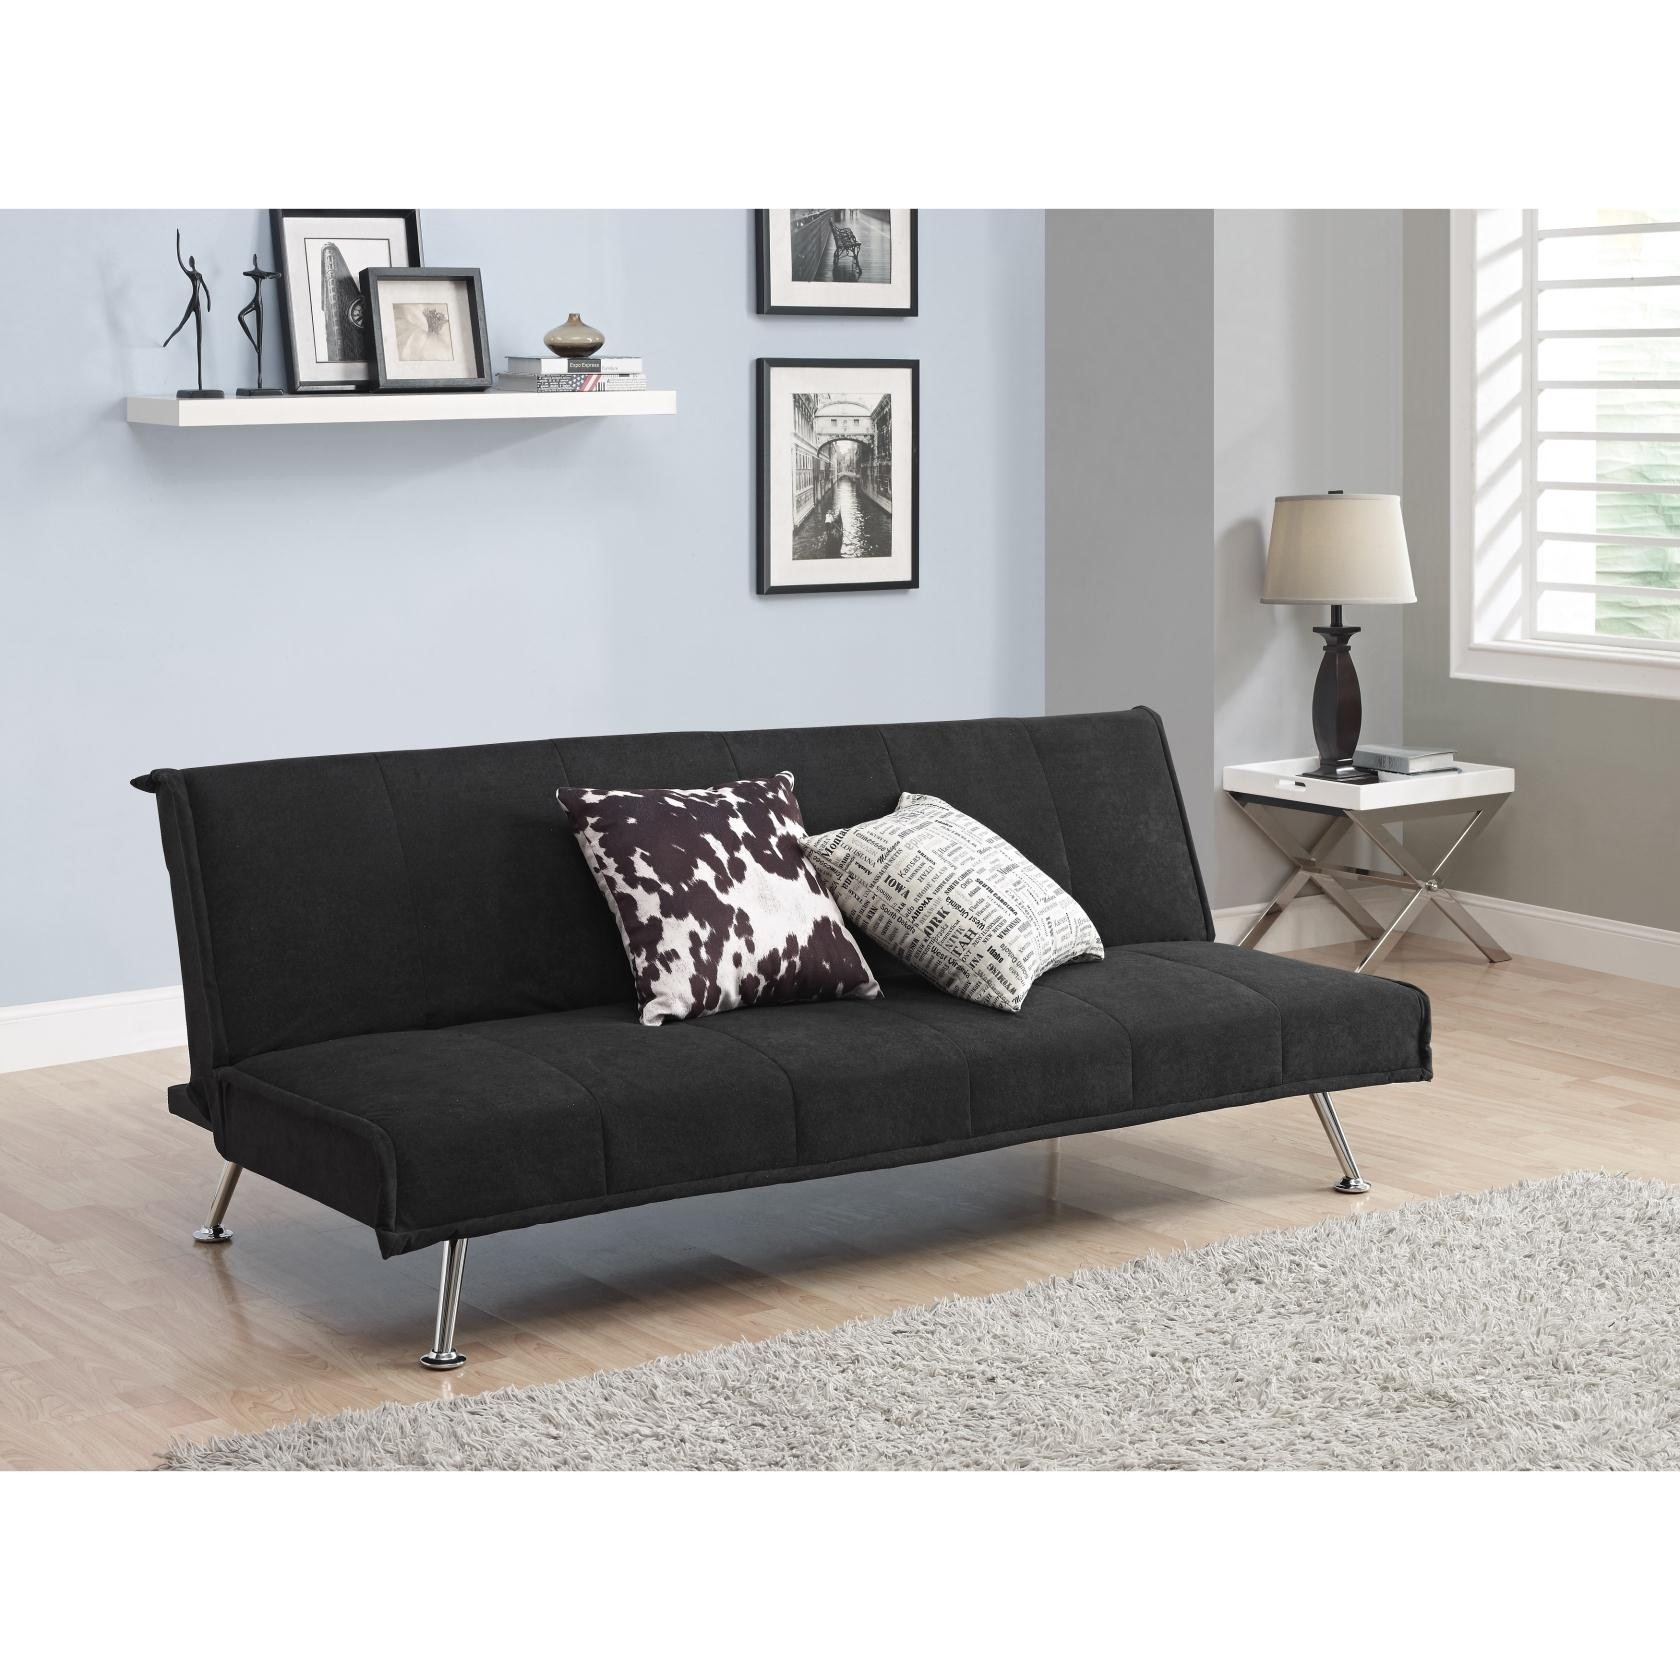 furniture  rug best walmart futon for home furniture idea  - walmart futons beds  futon big lots  walmart futon